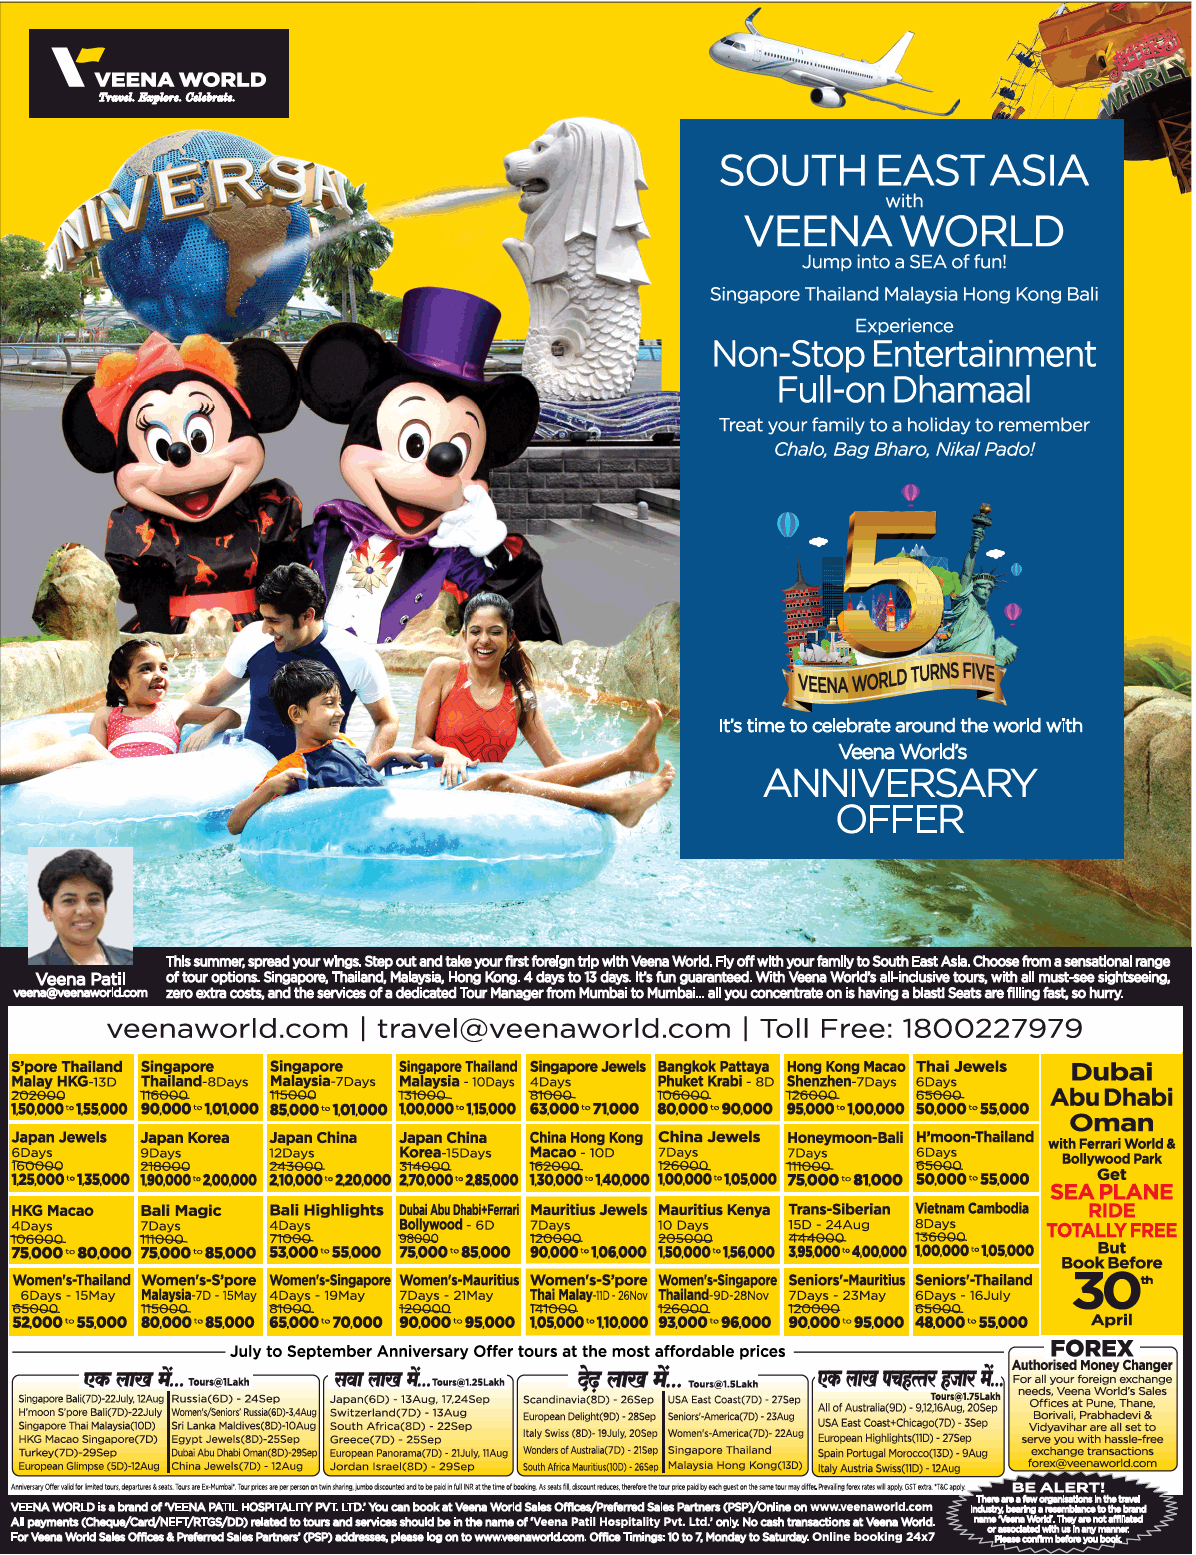 Veena World South East Asia With Veena World Ad Advert Gallery